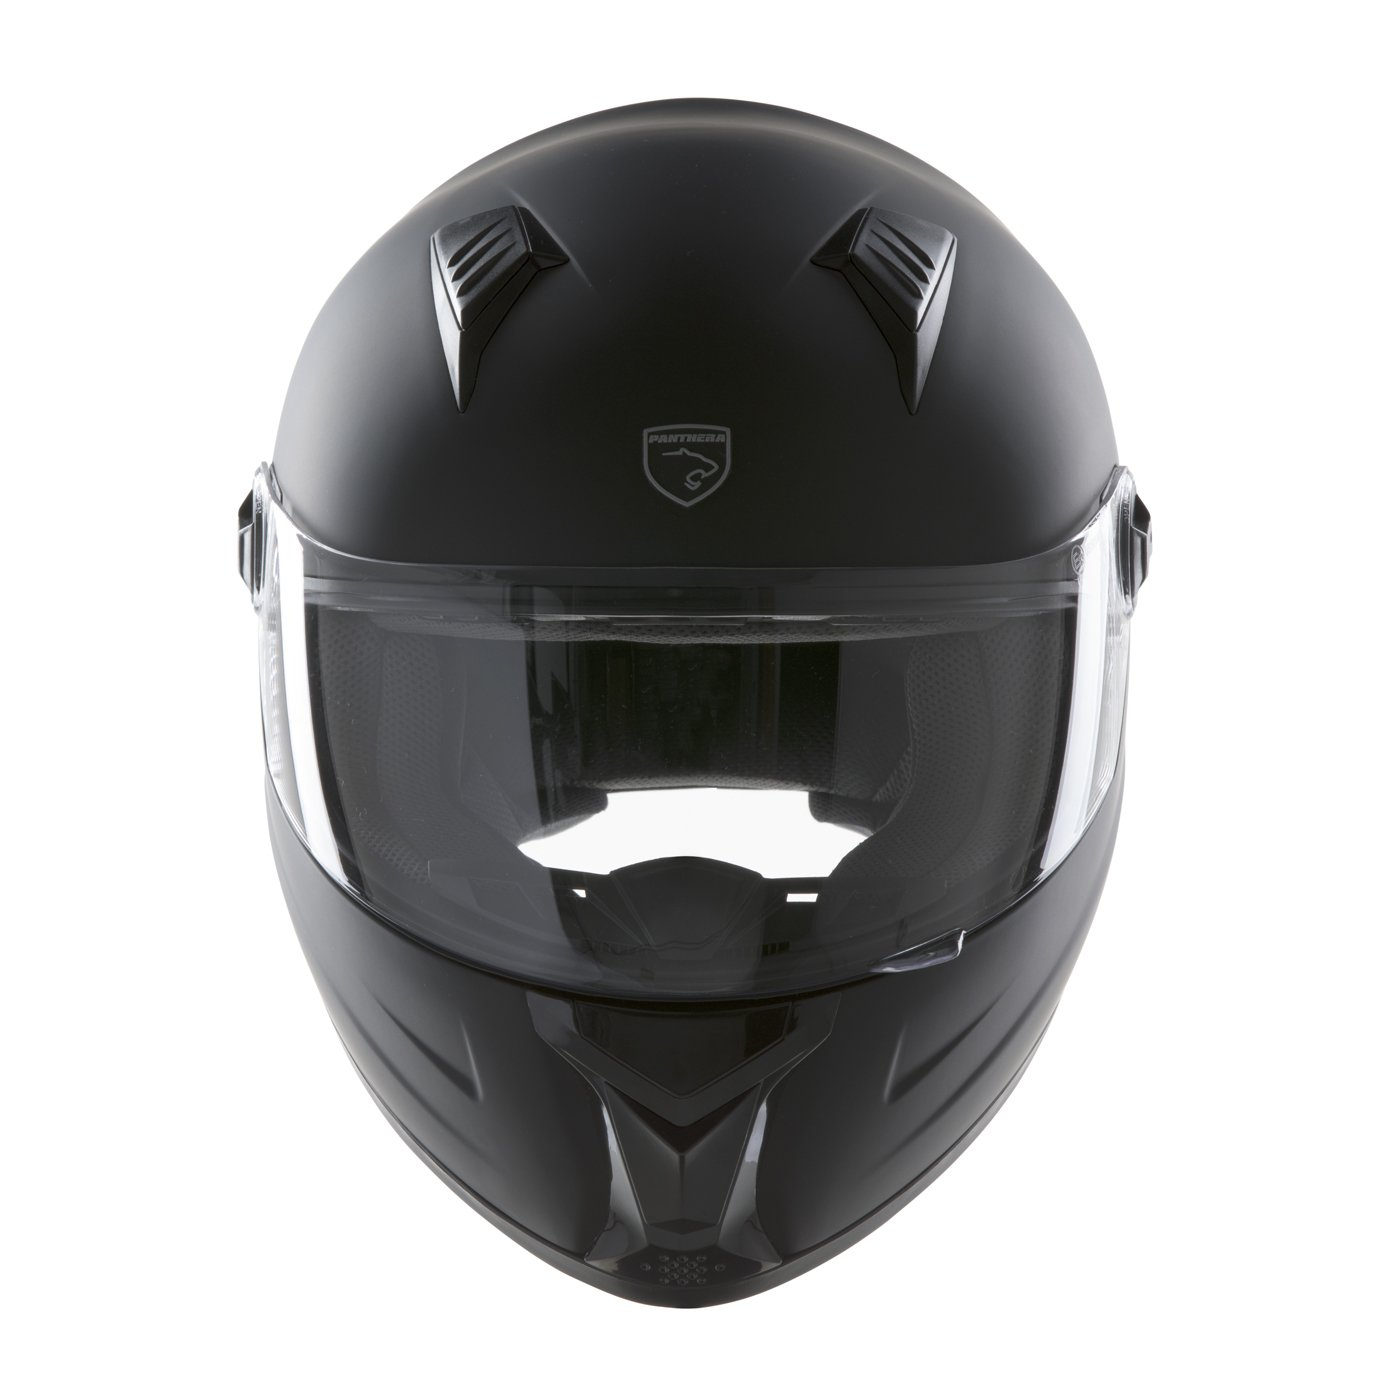 Panthera casco integrale Racer bianco lucente taille M Rider Valley FS807-WHM